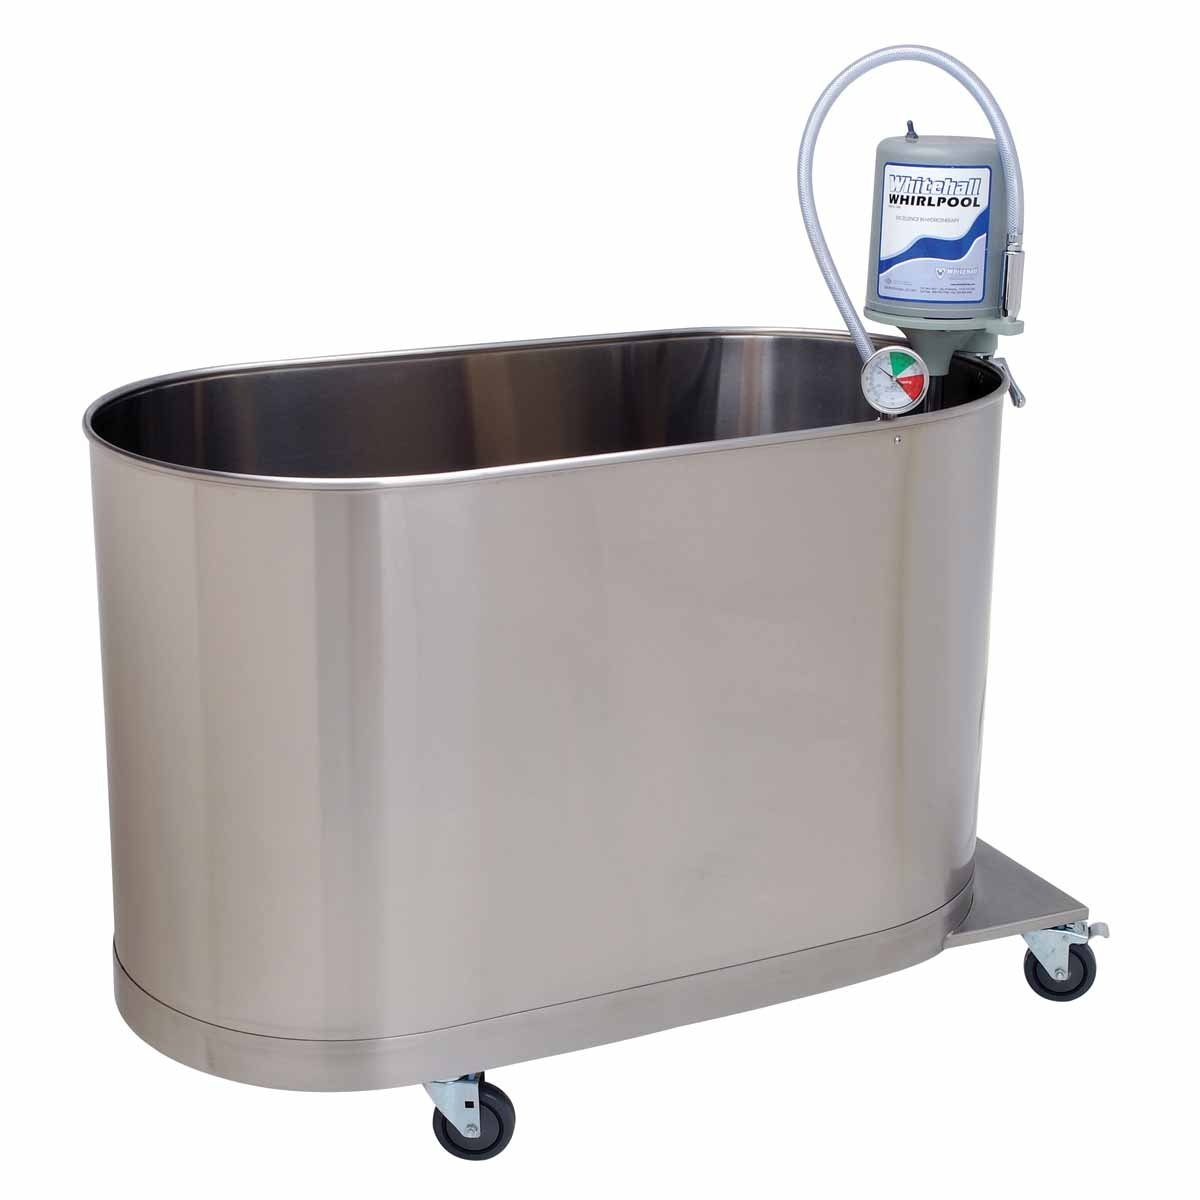 Image of Bathtubs Whitehall 42-1228 Hi-Boy Whirlpool, Mobile H-105-M, 48' Length x 24' Width x 28' Depth x 34' Height, 105 gal Capacity, Stainless Steel